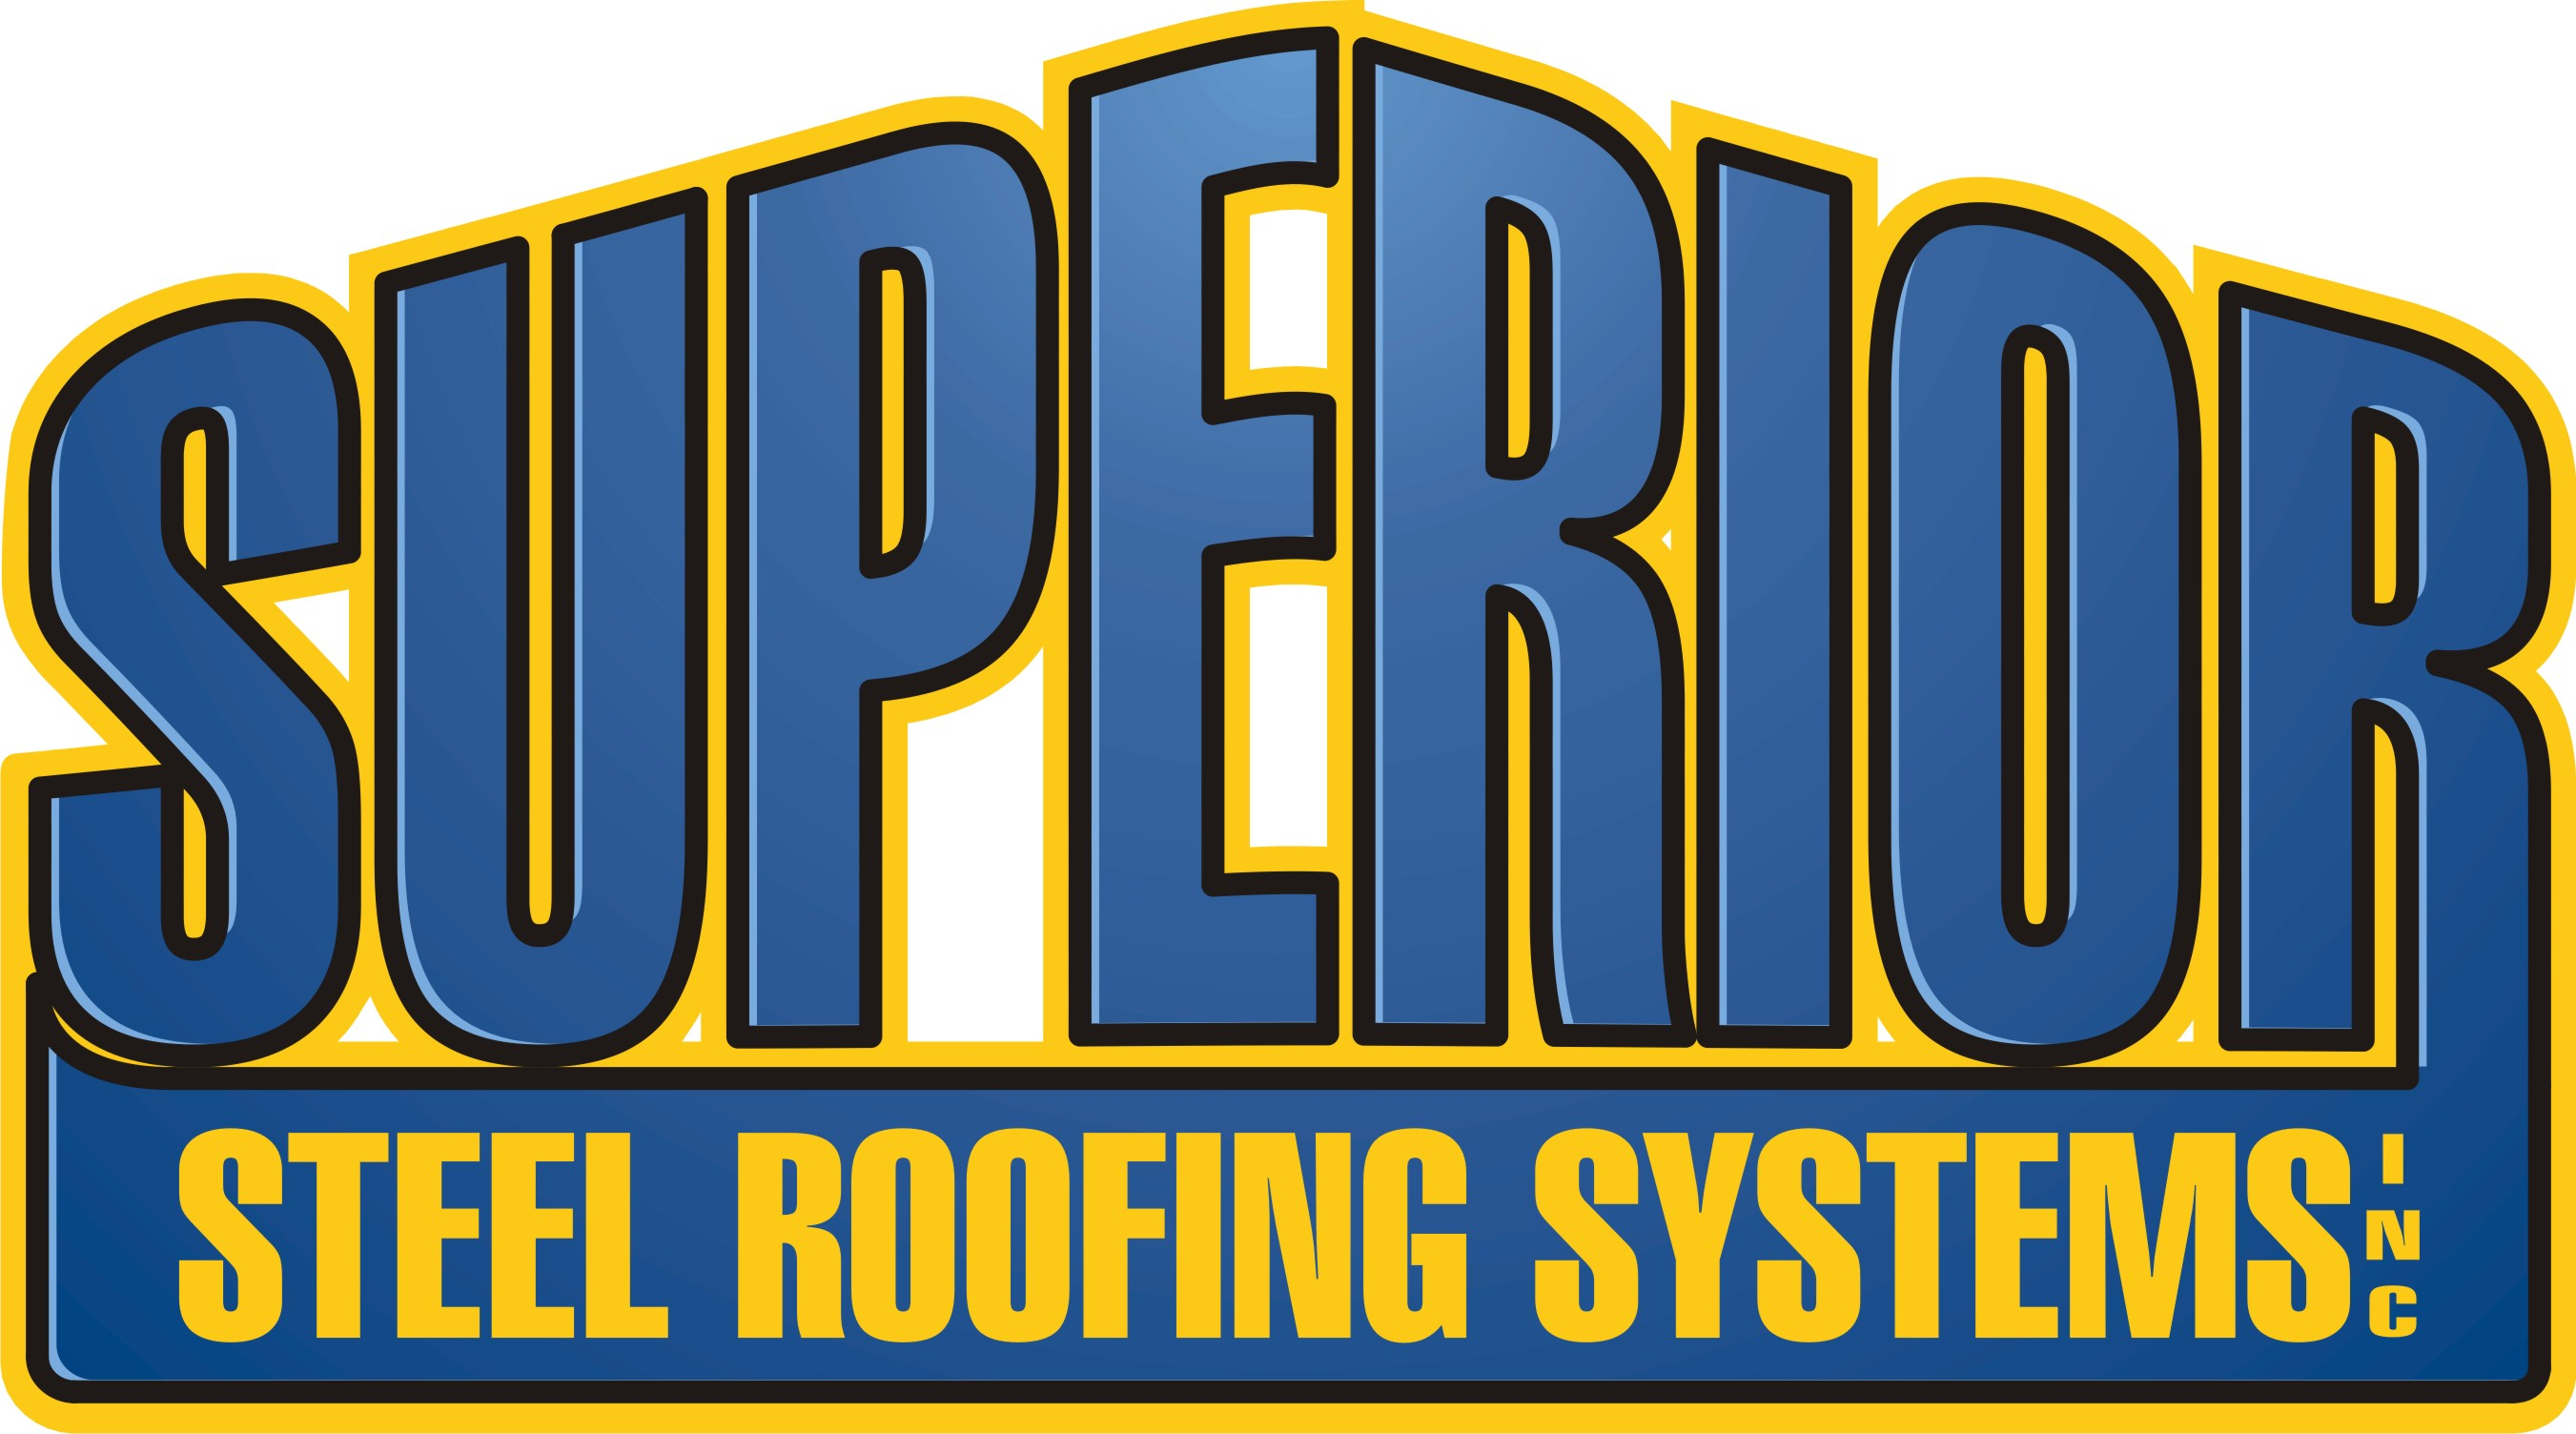 superior steel roofing systems logo